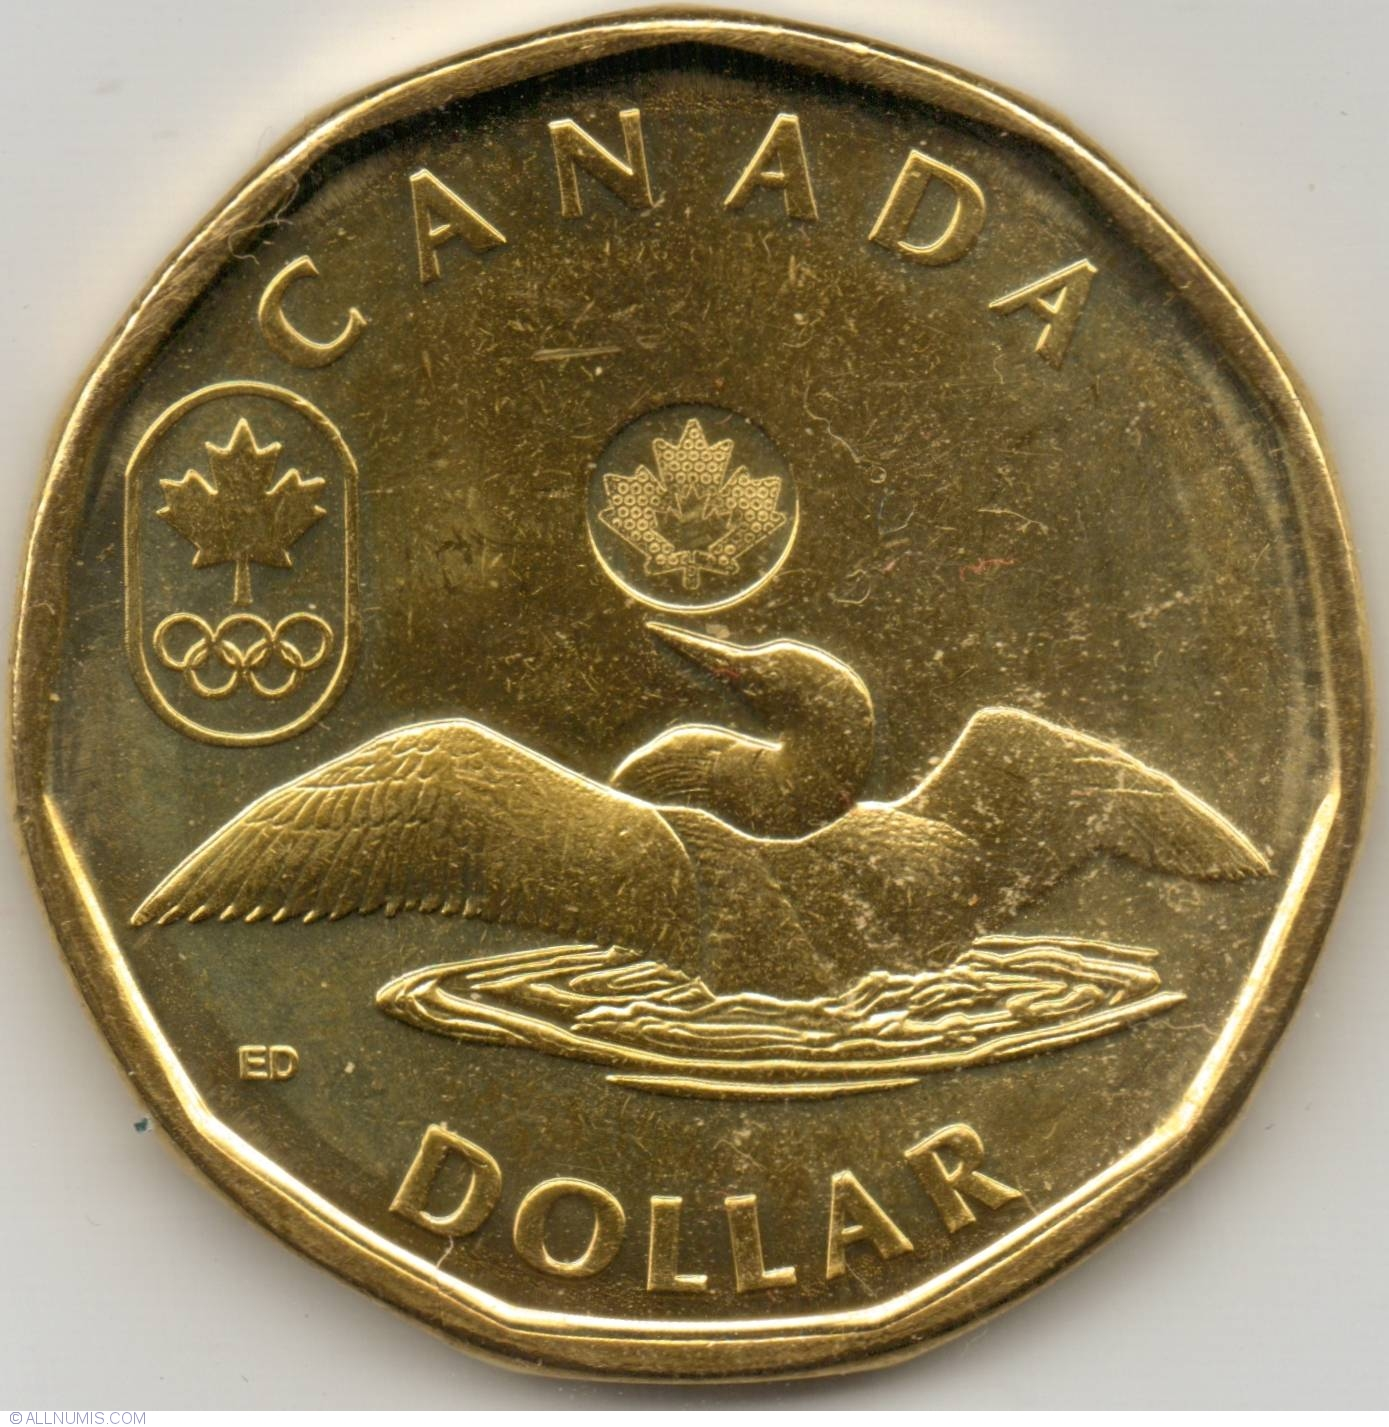 1 Dollar 2012 Olympic Lucky Loonie Commemorative